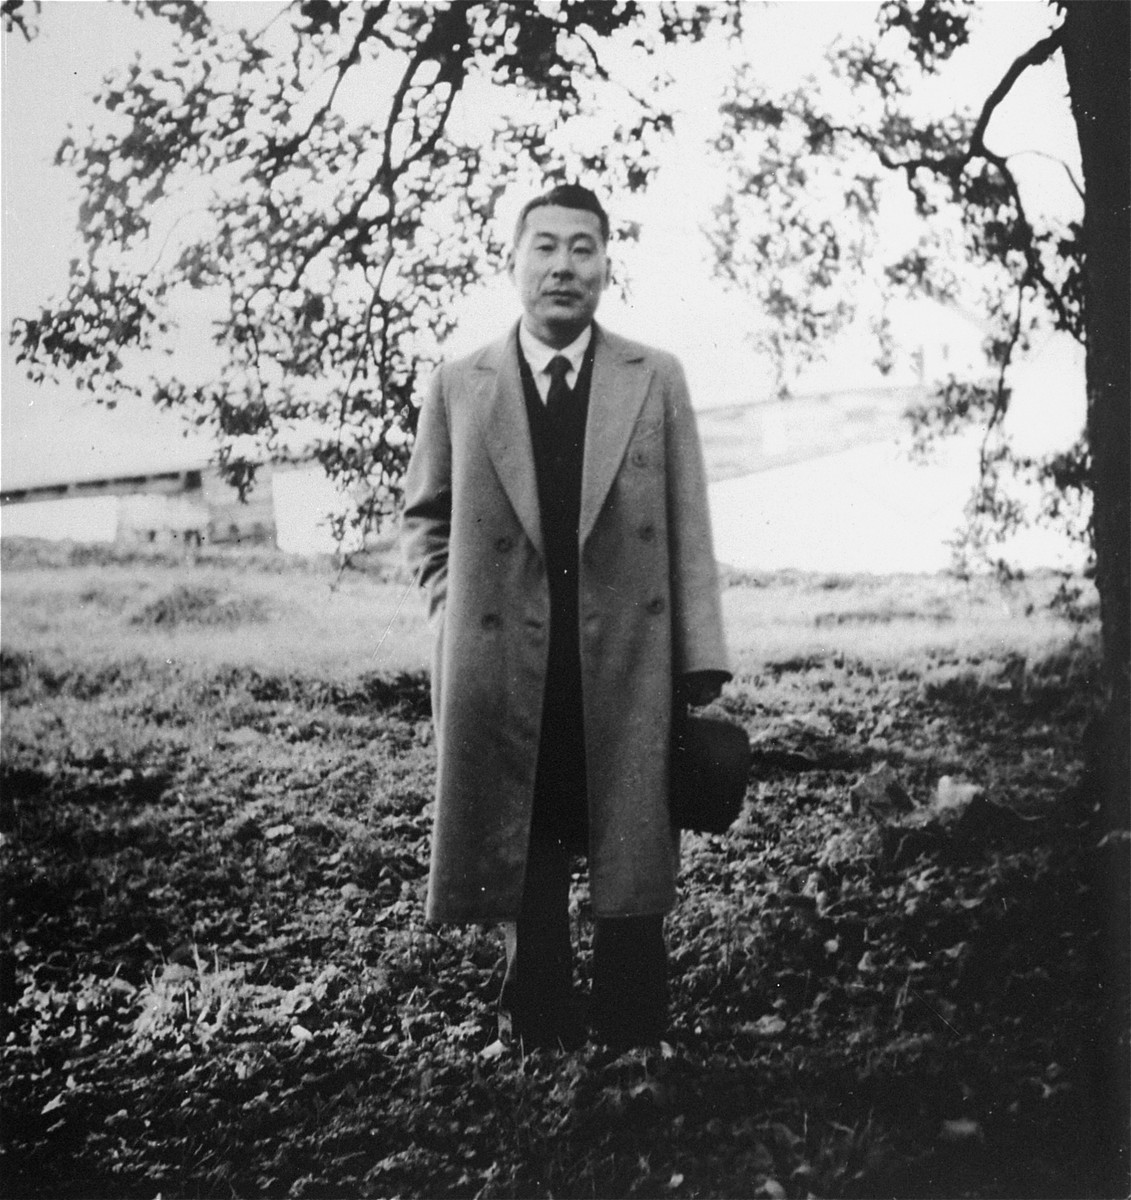 Chiune Sugihara poses outside beneath a tree in Kaunas.